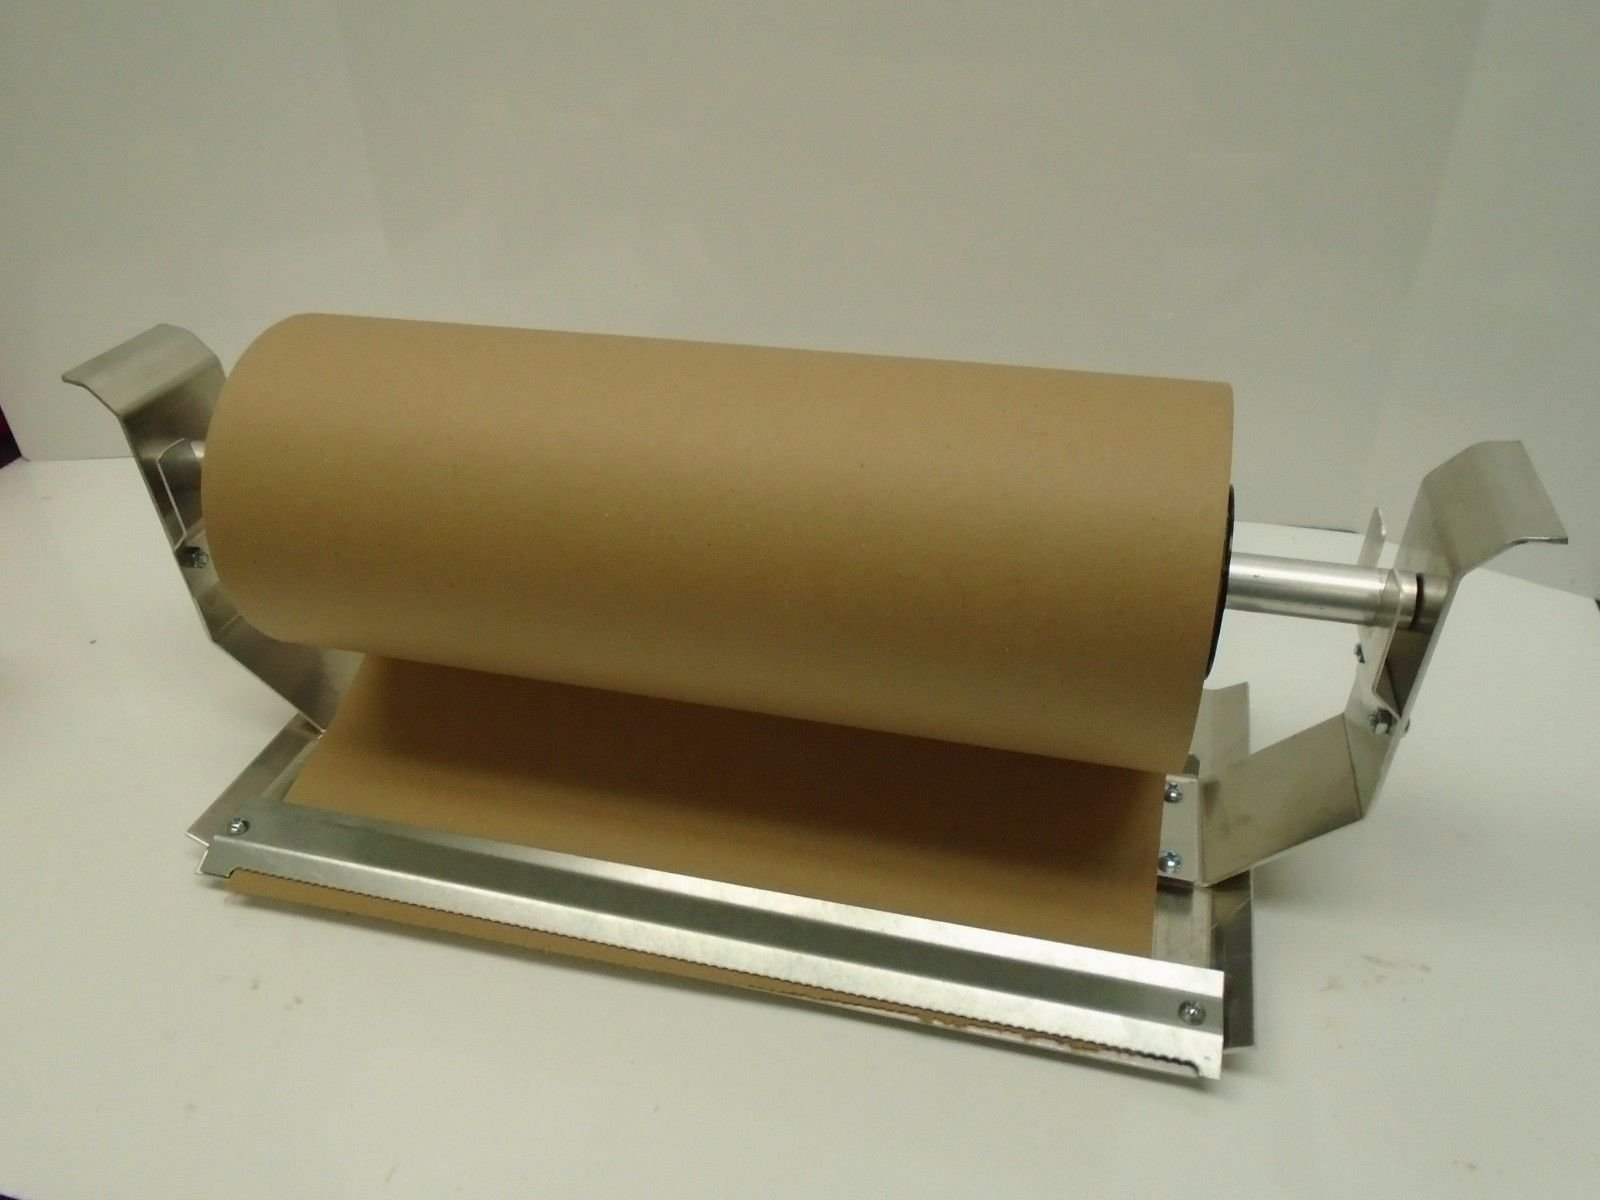 Paper Cutter Roll Dispenser Econoline 15 inches table mount Kraft paper Duralov